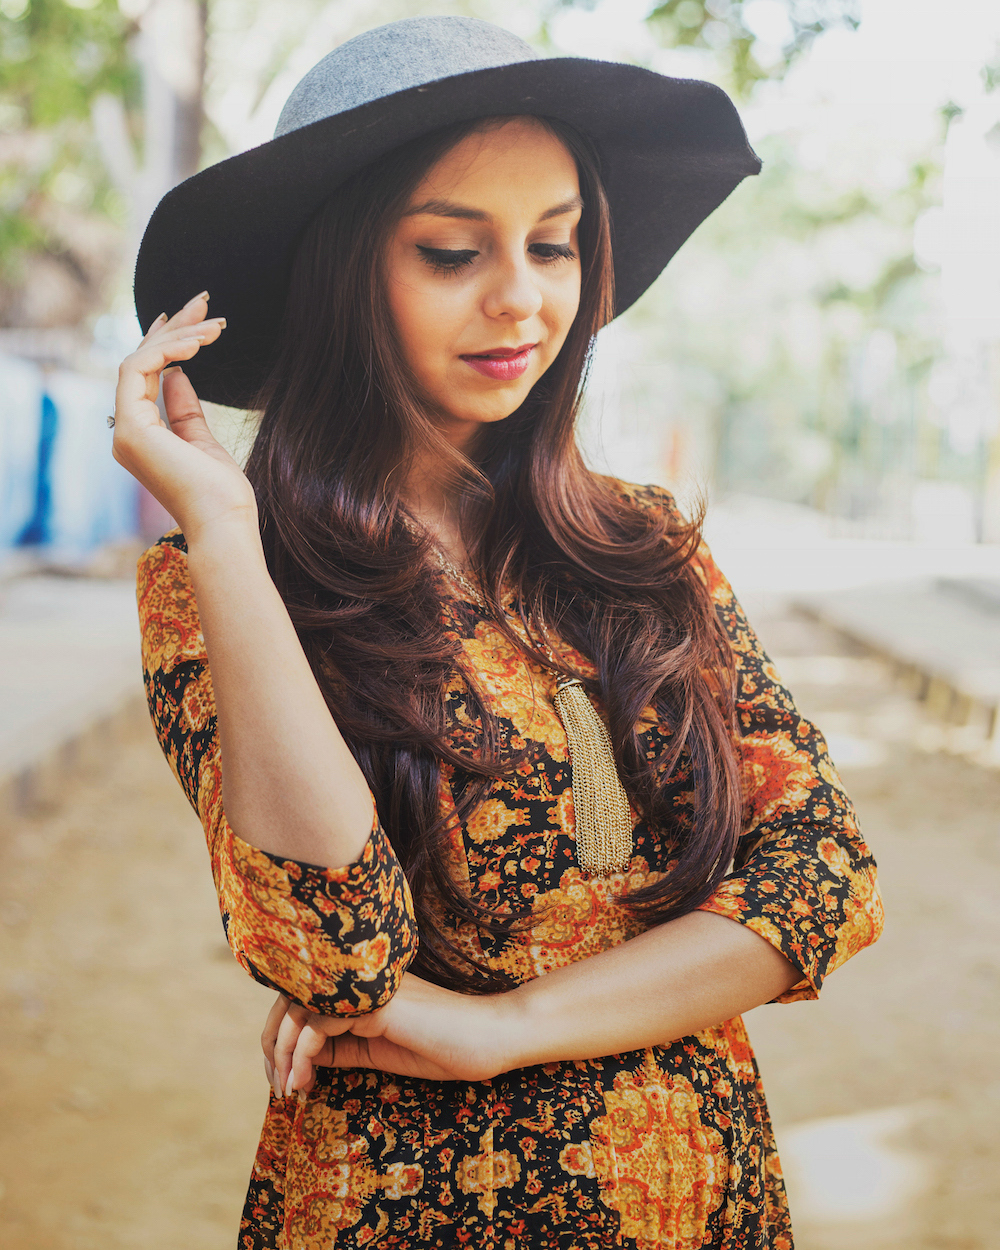 Boho At Heart Only Personal Style Photo Stories 6